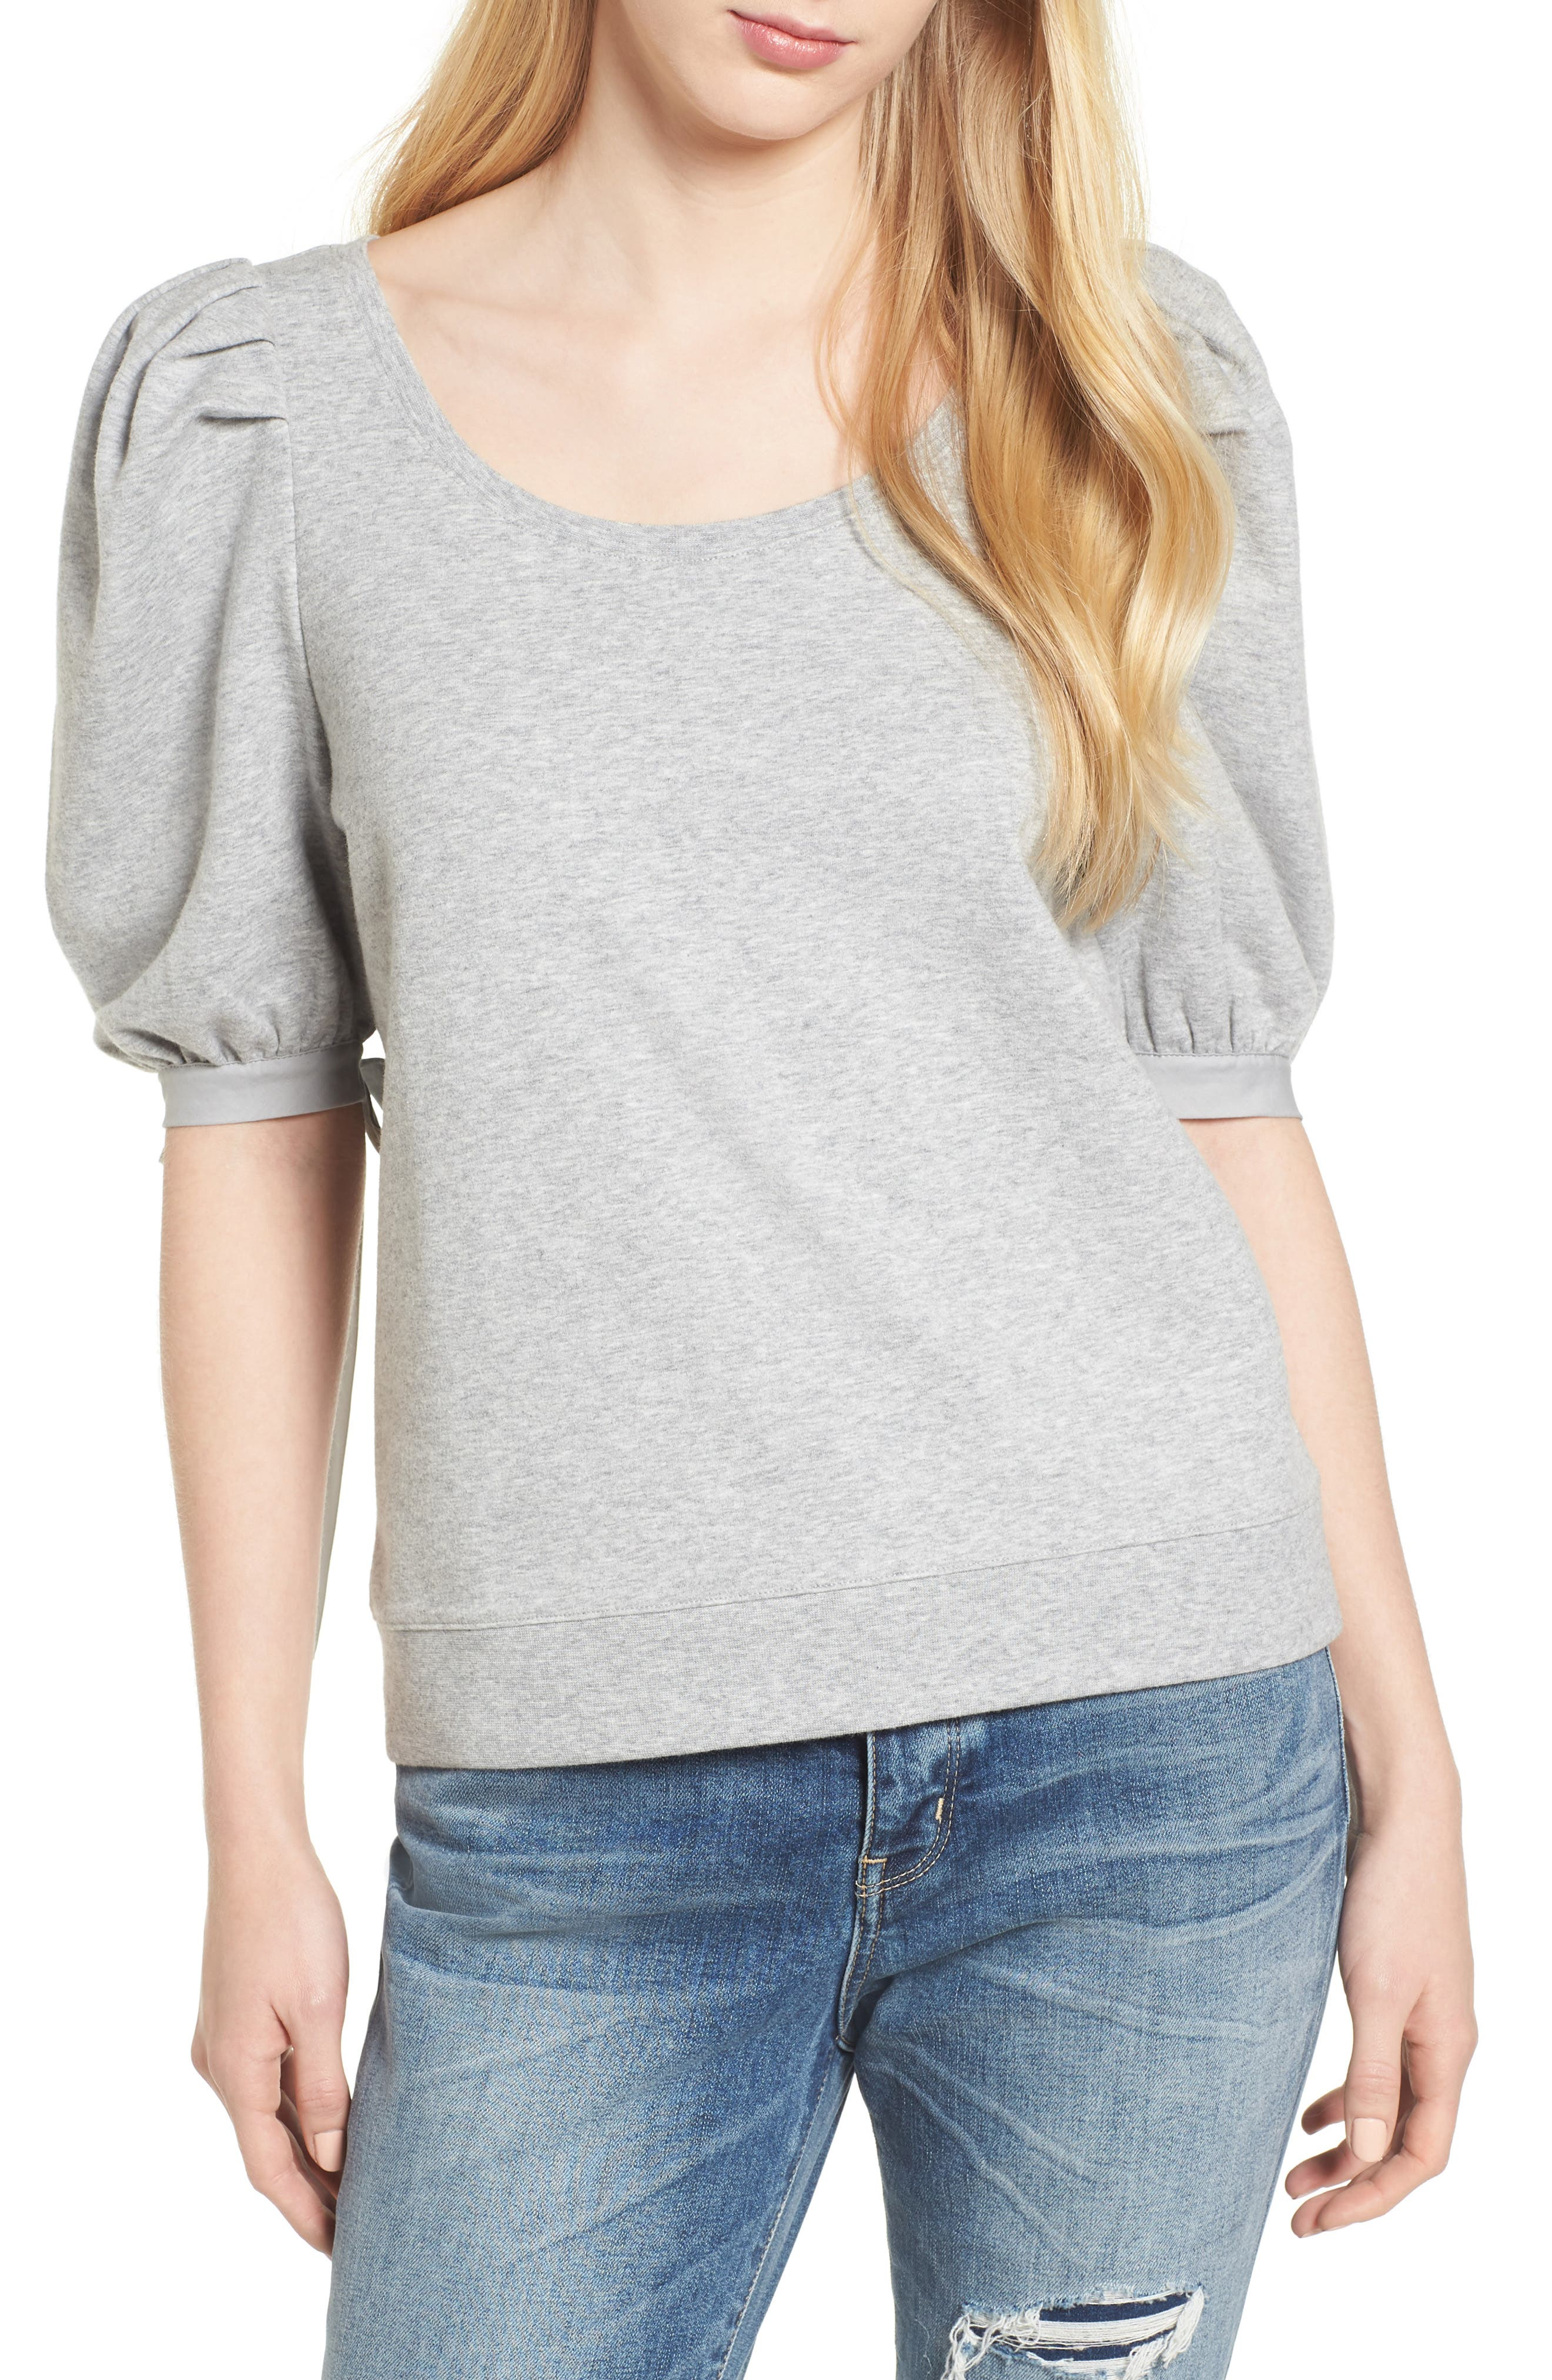 Puff Sleeve Top,                             Main thumbnail 1, color,                             Grey Heather